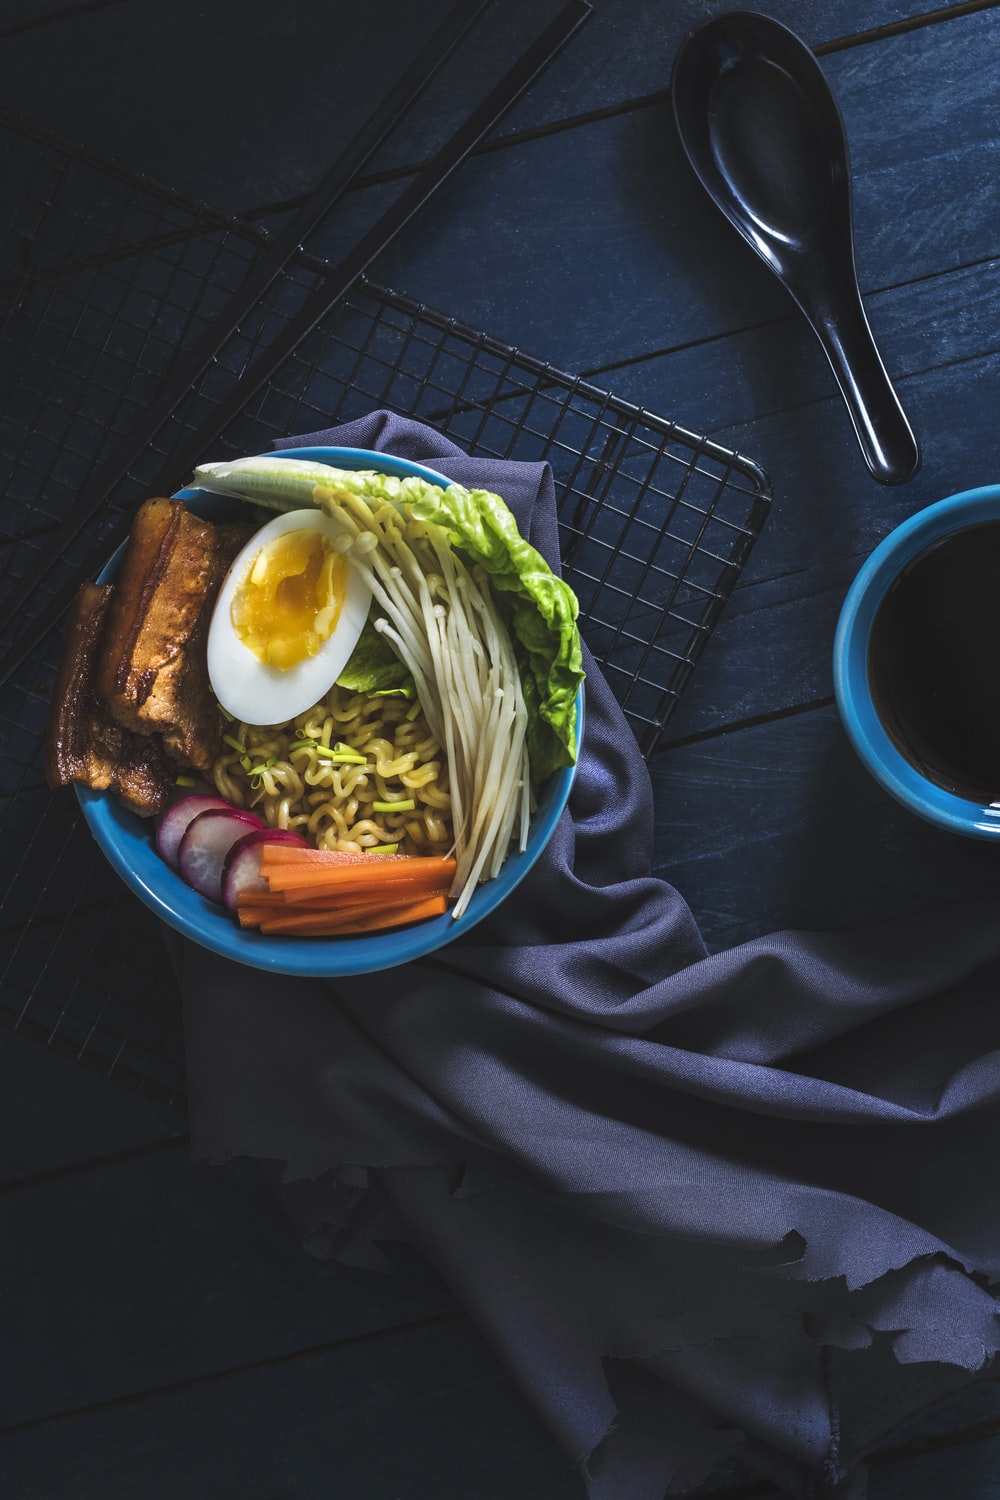 Japanese food pictures download free images on unsplash flat lay photography of ramen beside black spoon forumfinder Images